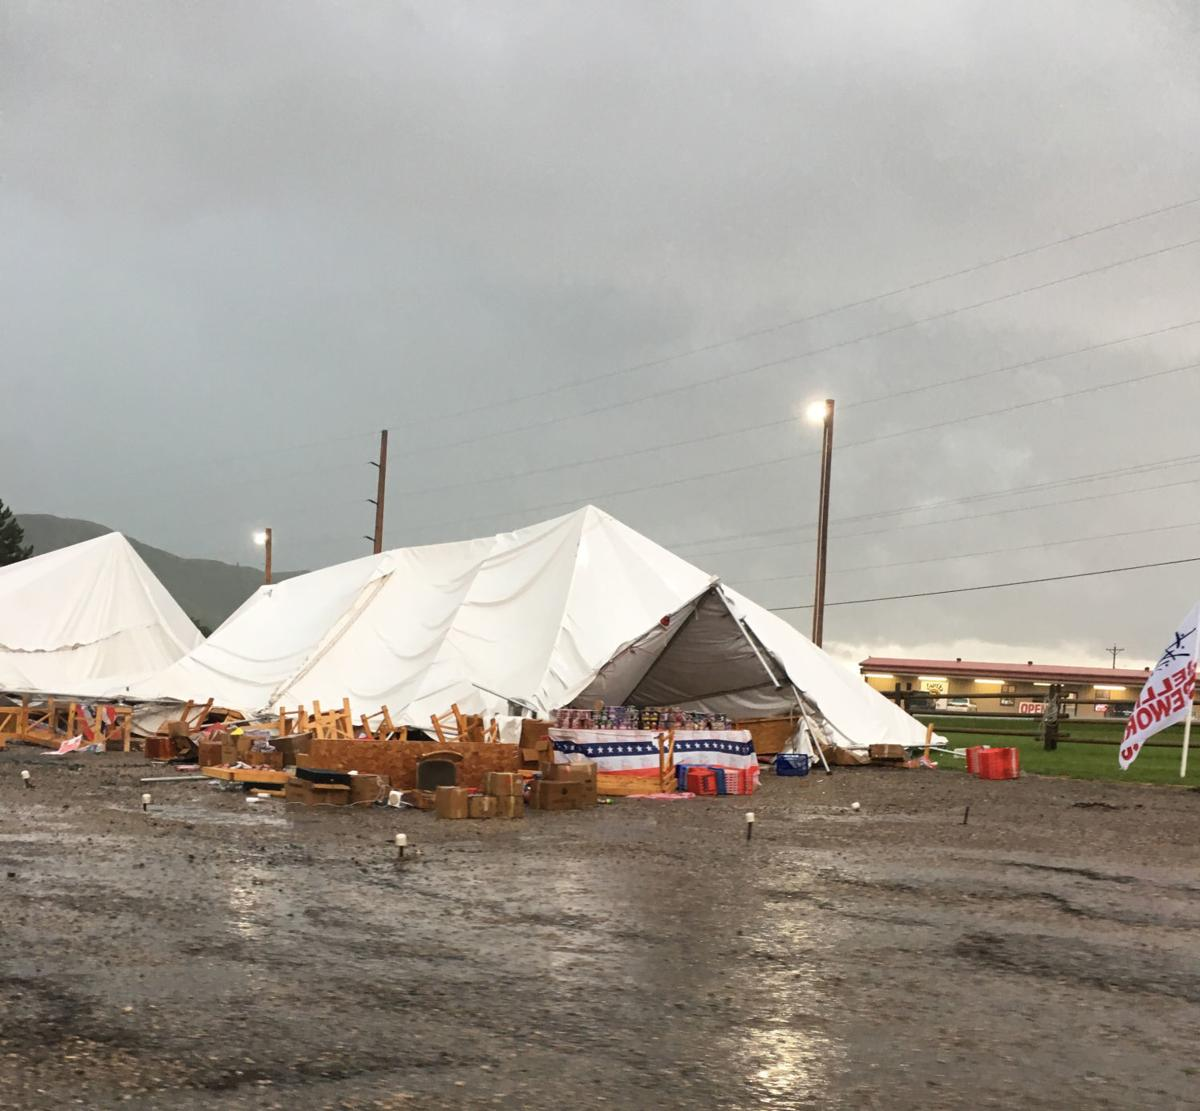 All Hail Breaks Loose On I-90: Storm Produces Tornadoes